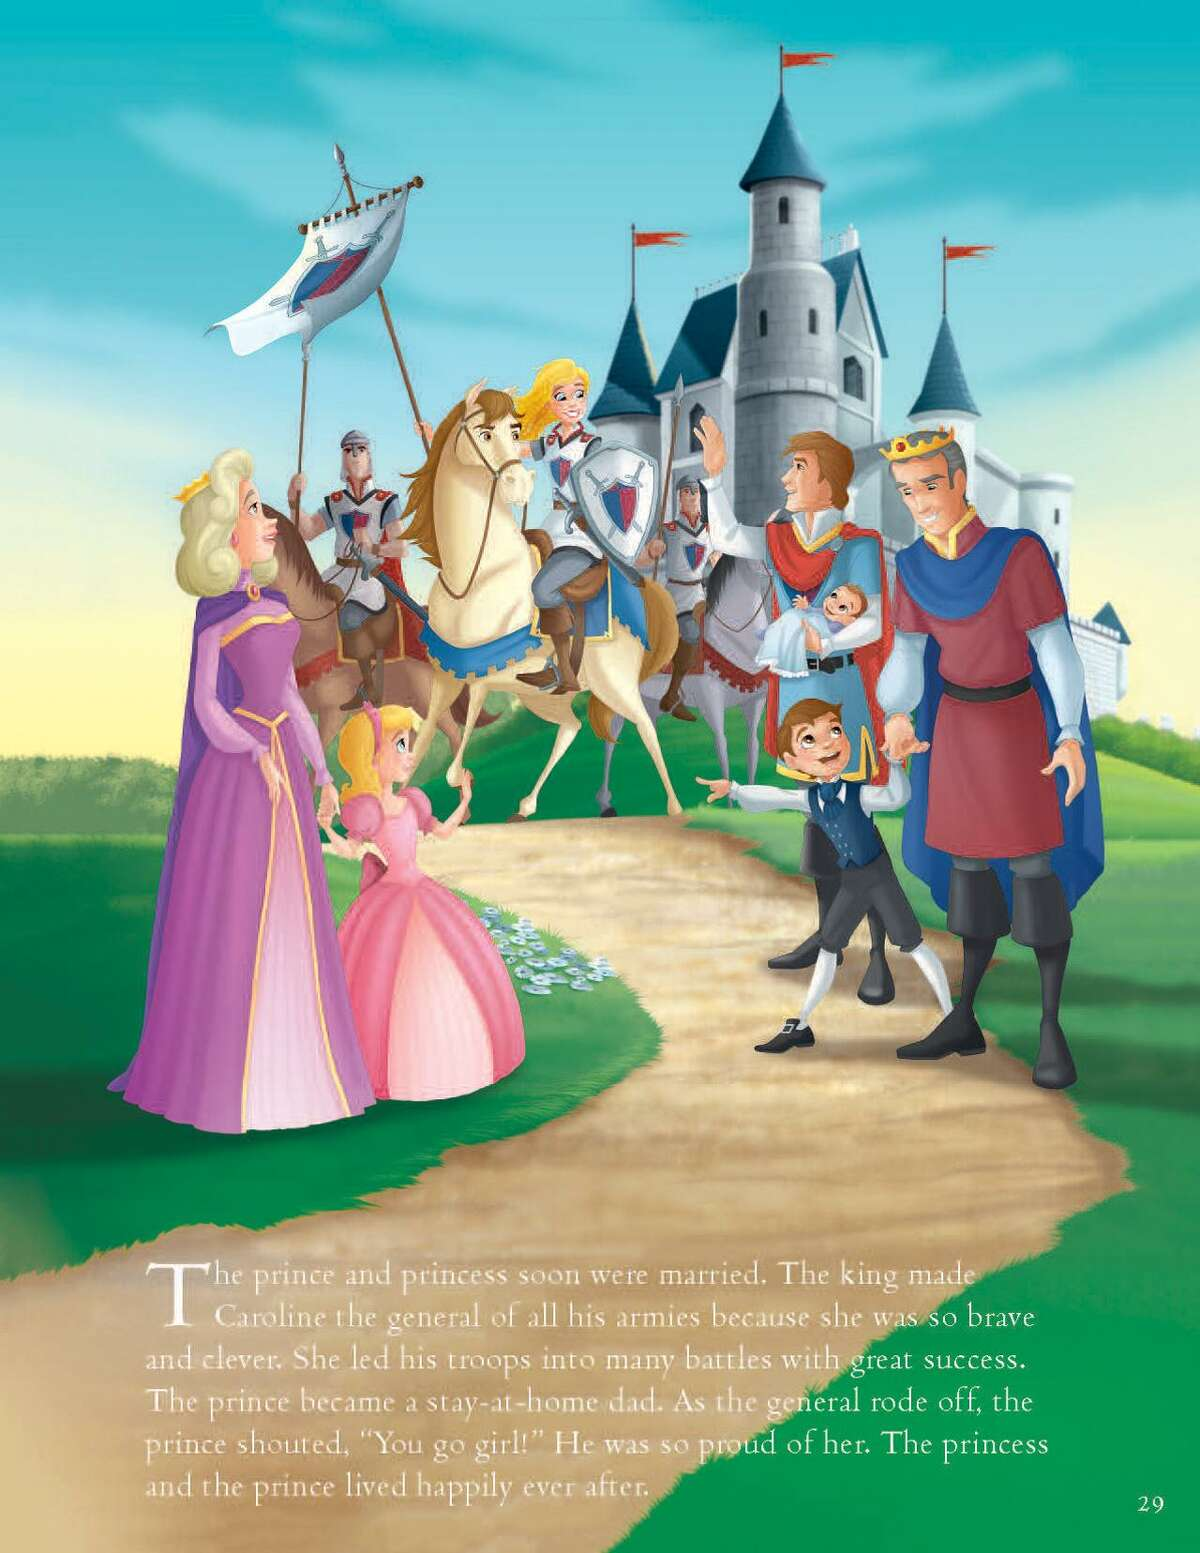 Caroline meets her prince, but shows more daring and resourcefulness than your typical fairytale bride.